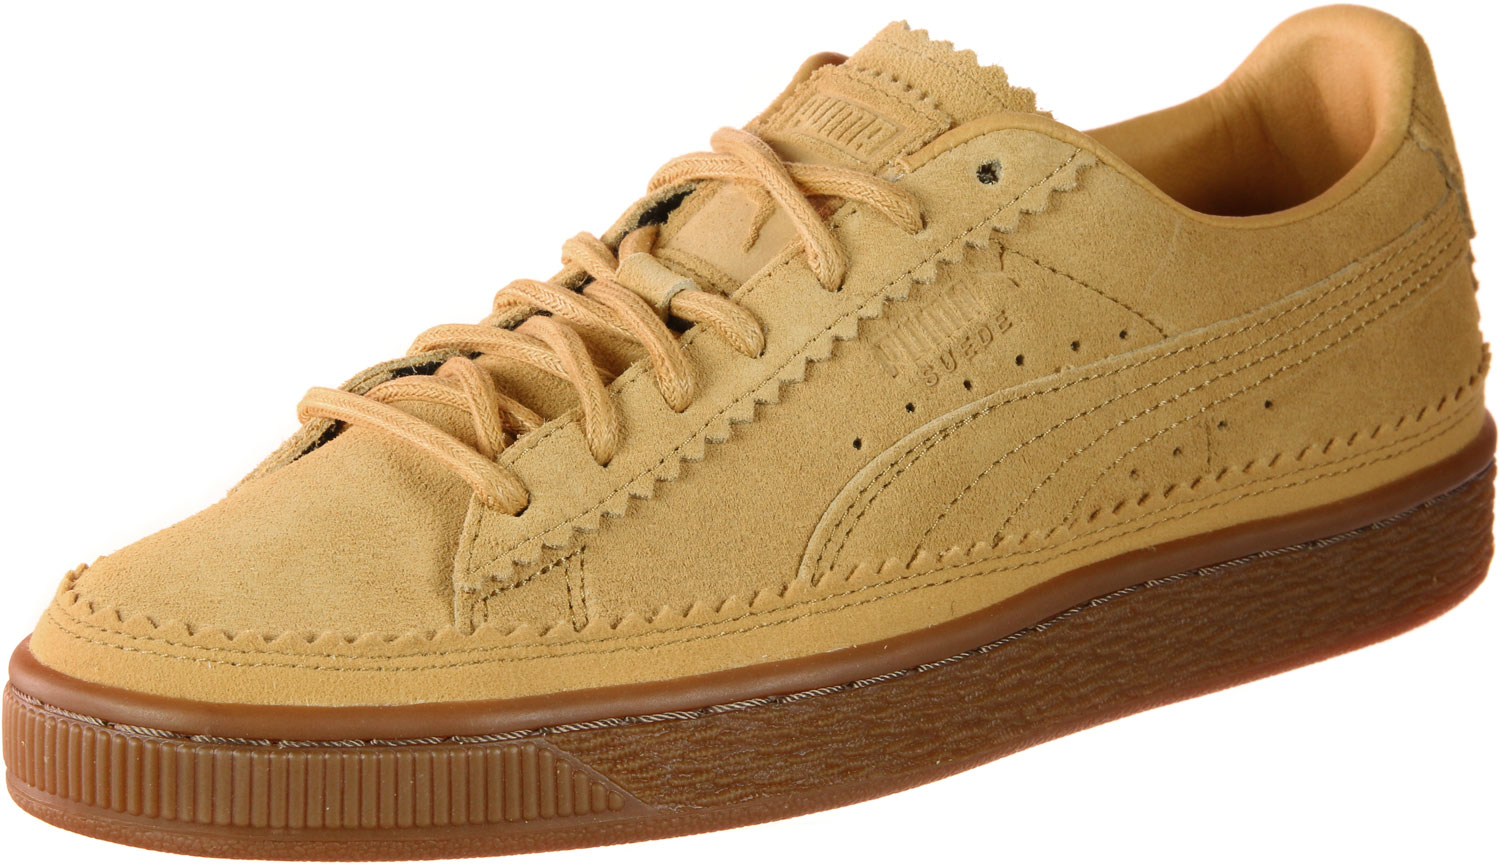 Puma Suede Classic Brouge - Sneakers